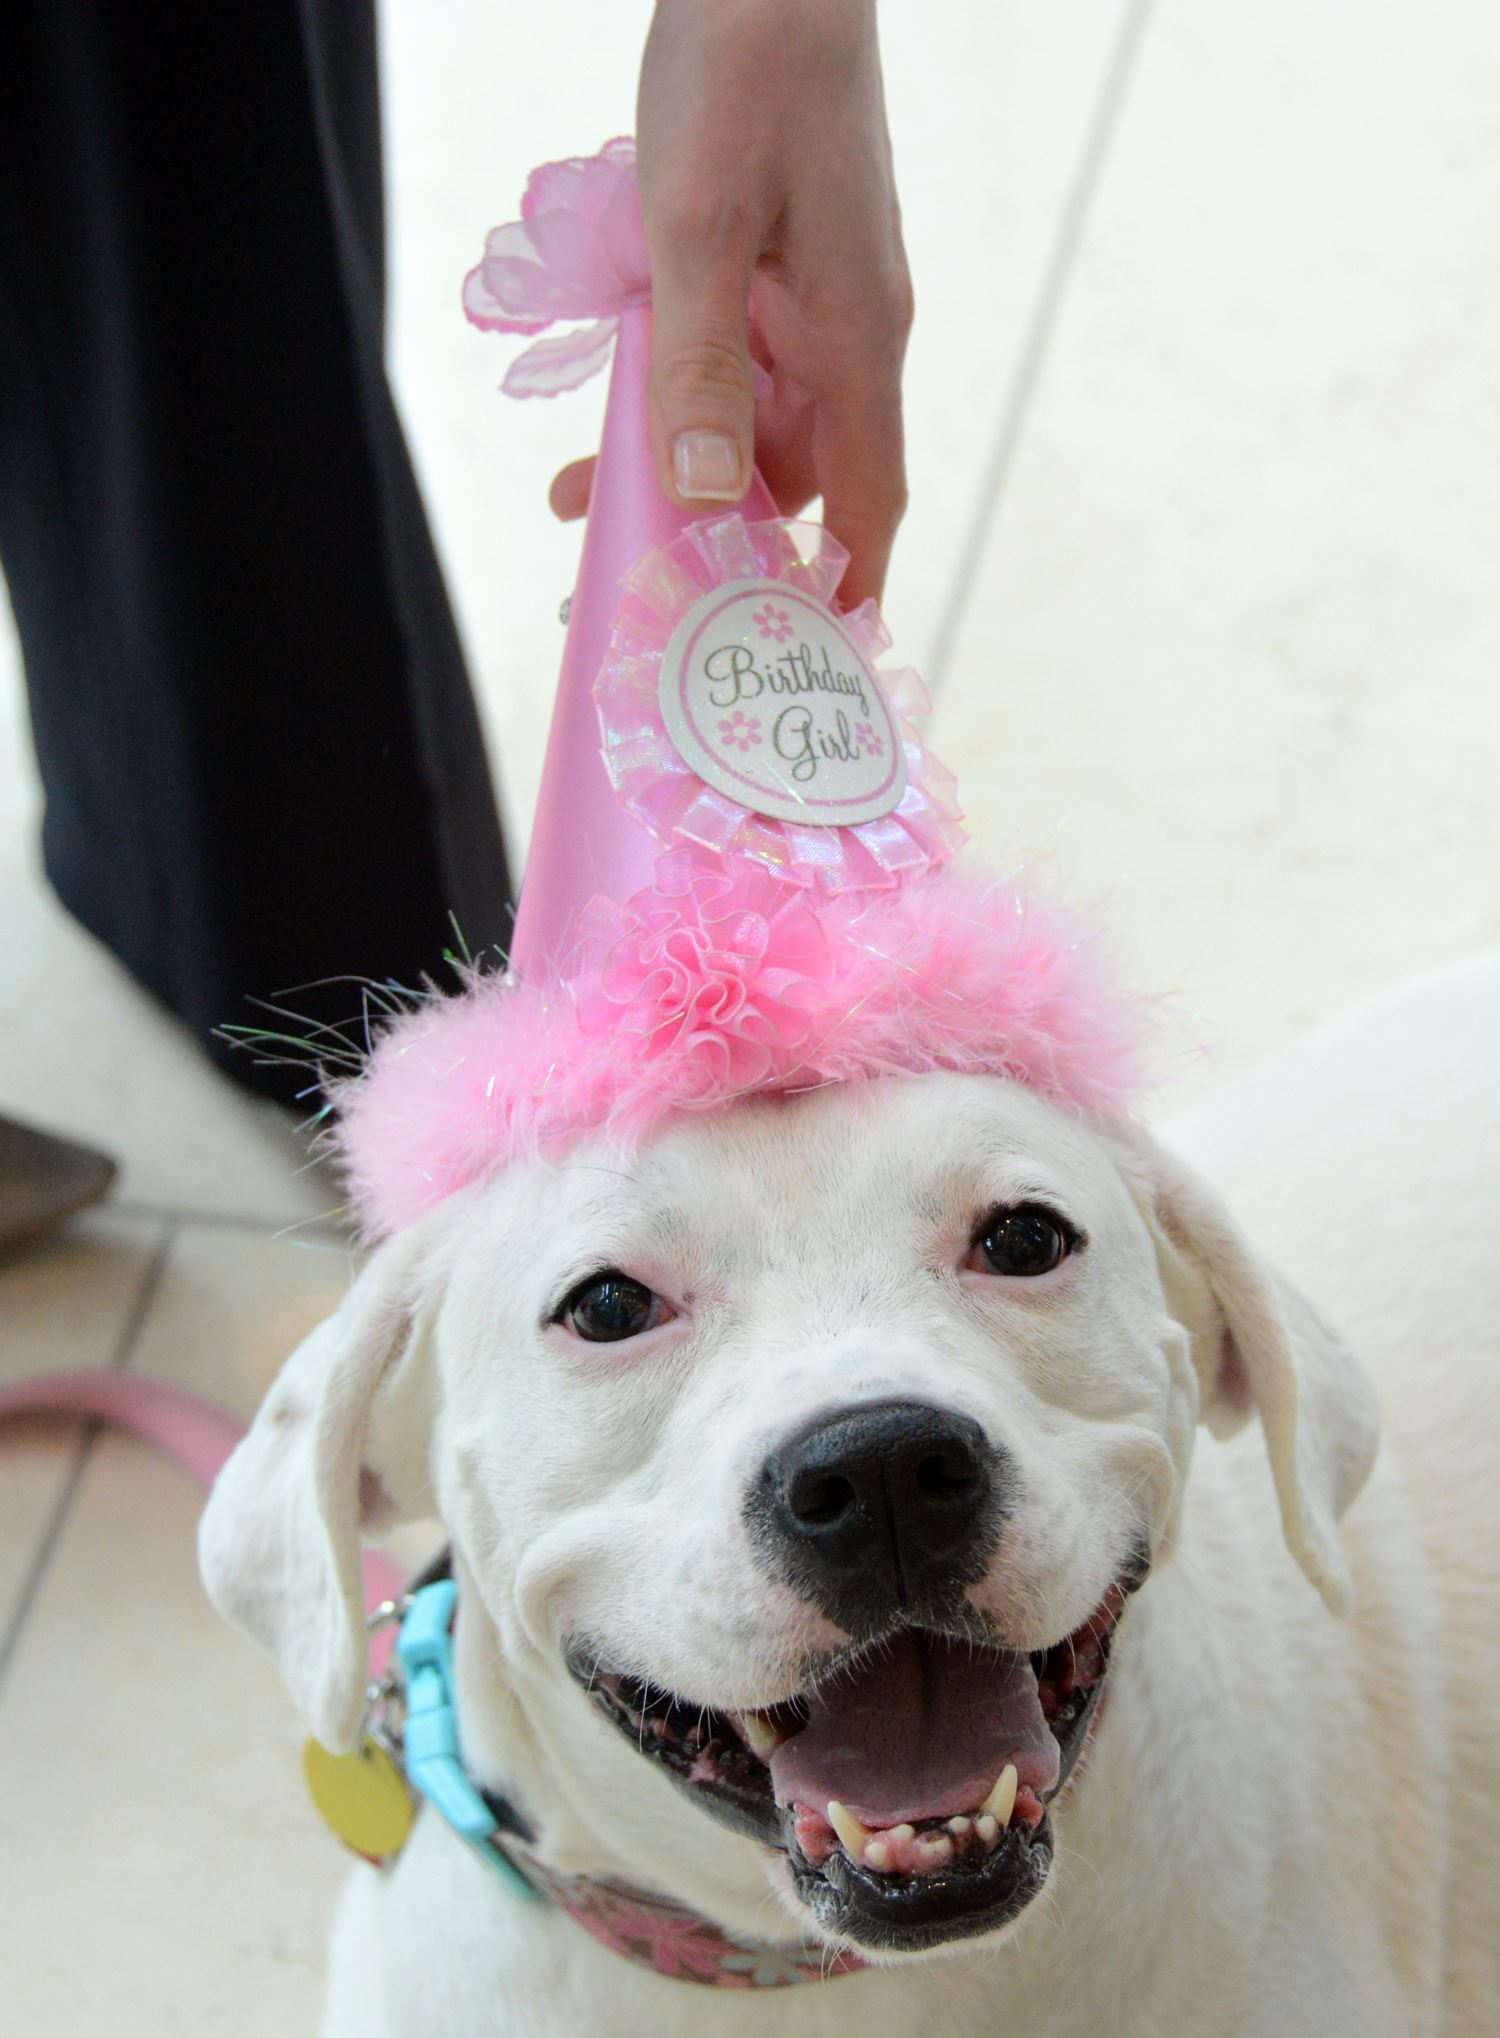 20140328lfDogLocal01 Julie Abramovic of Fairmont Pittsburgh put a birthday hat on Edie as she celebrated her fifth birthday Friday. Edie is a boxer/Labrador retriever mix who works five days a week at the Downtown hotel greeting visitors and escorting guests o